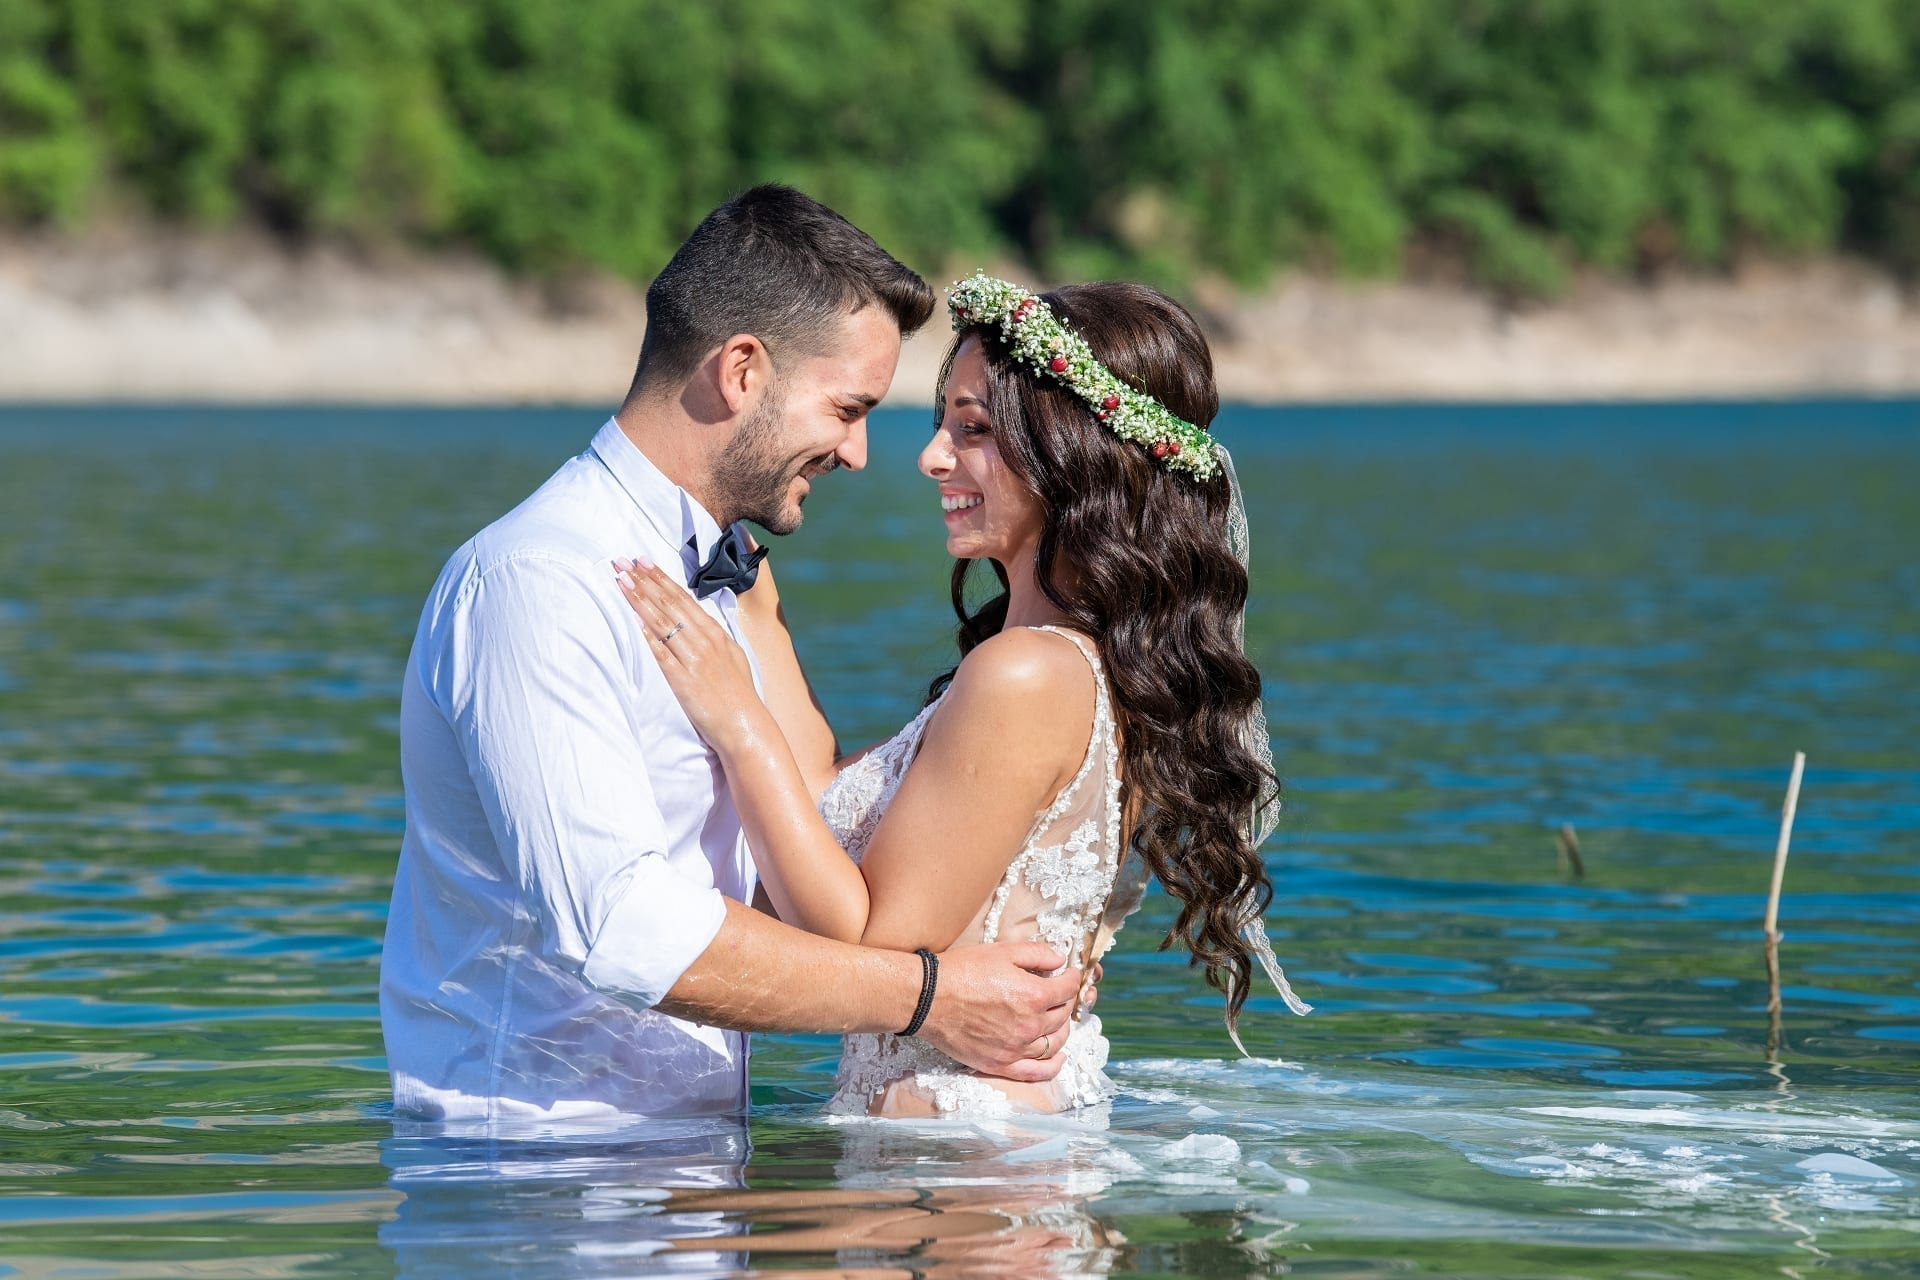 Newlyweds Lake, Vogdanidis + Sons